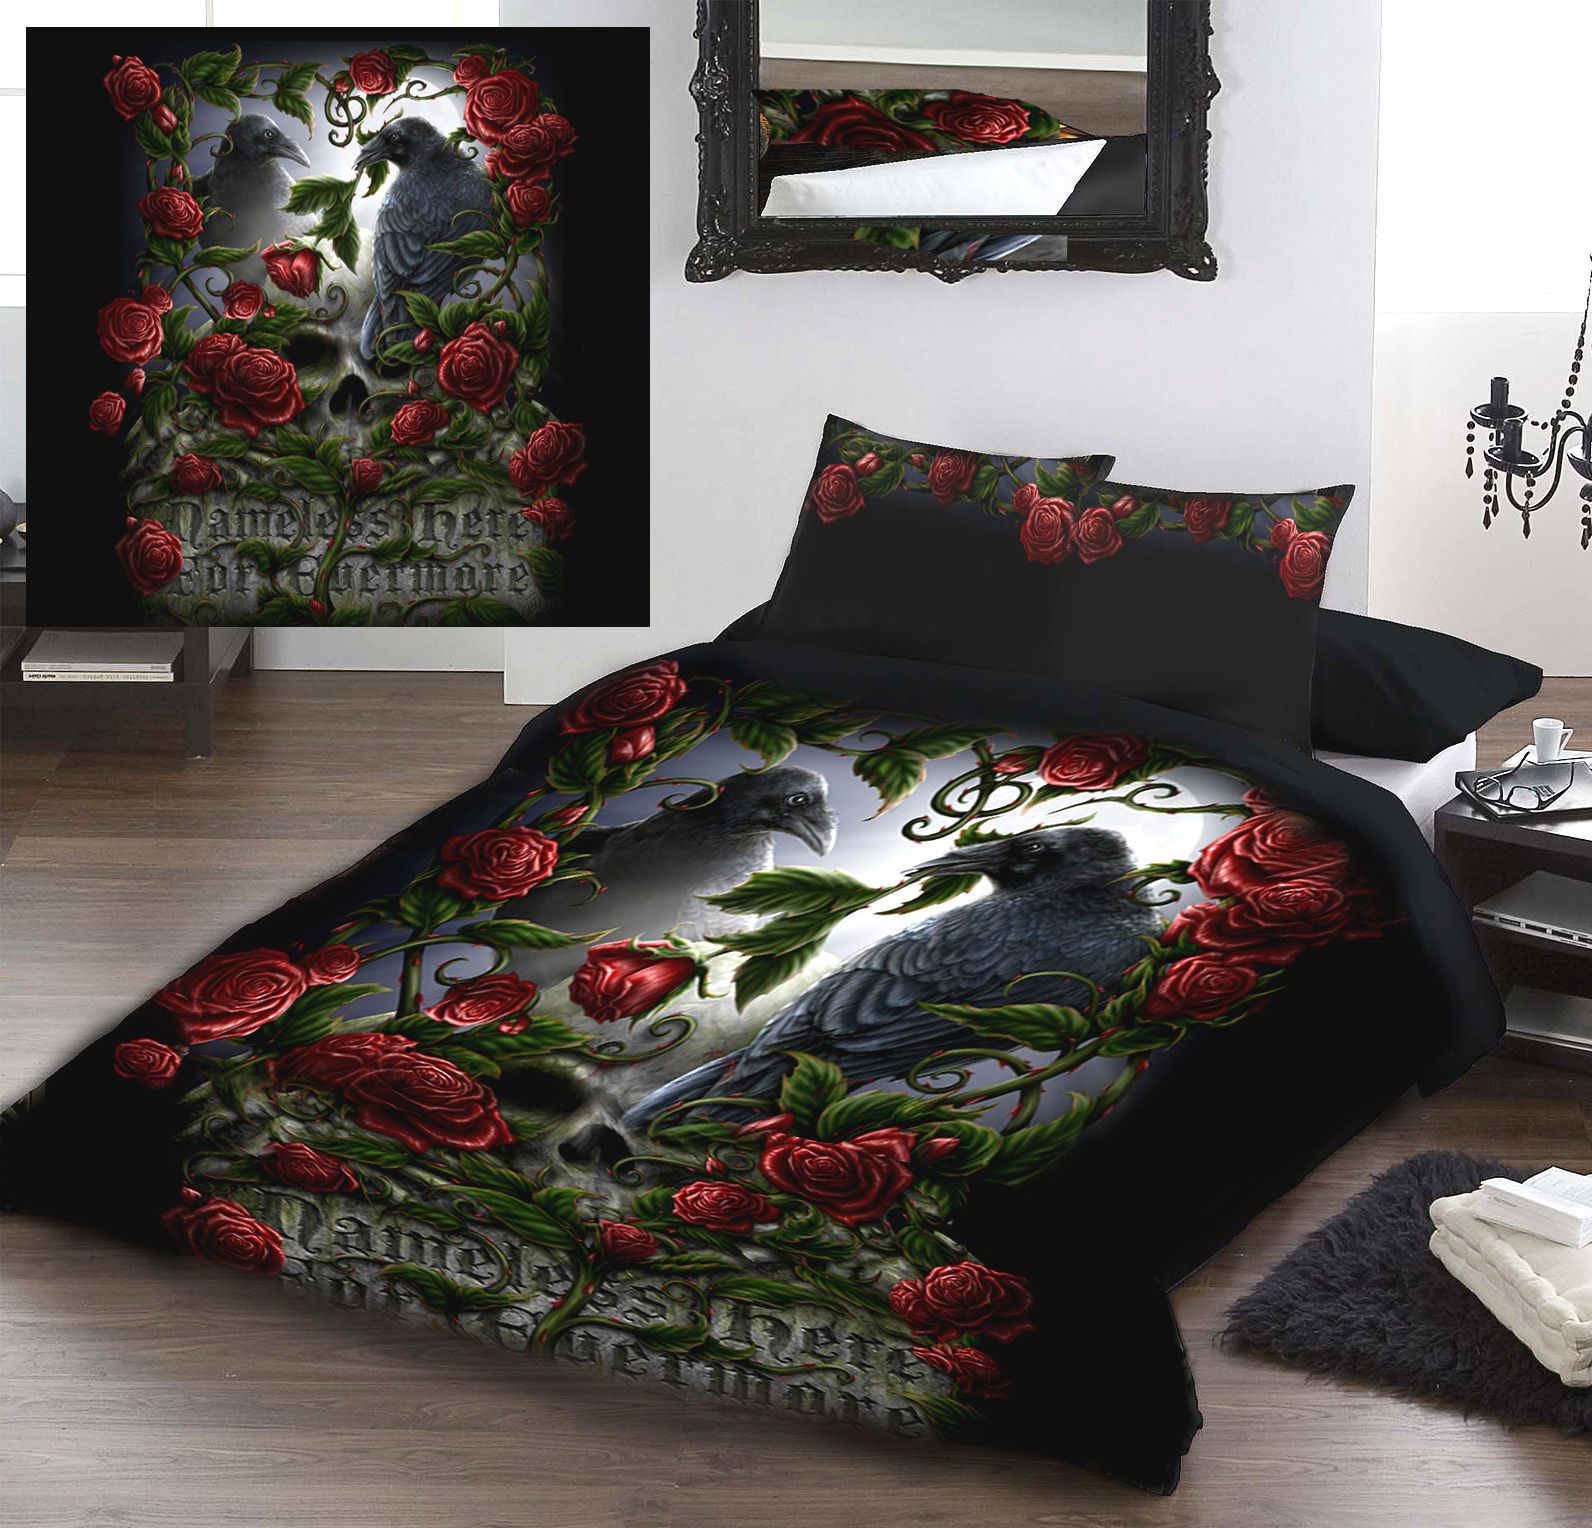 about covers duvet pin home cool size duvets king designing with interior remodel ideas awesome